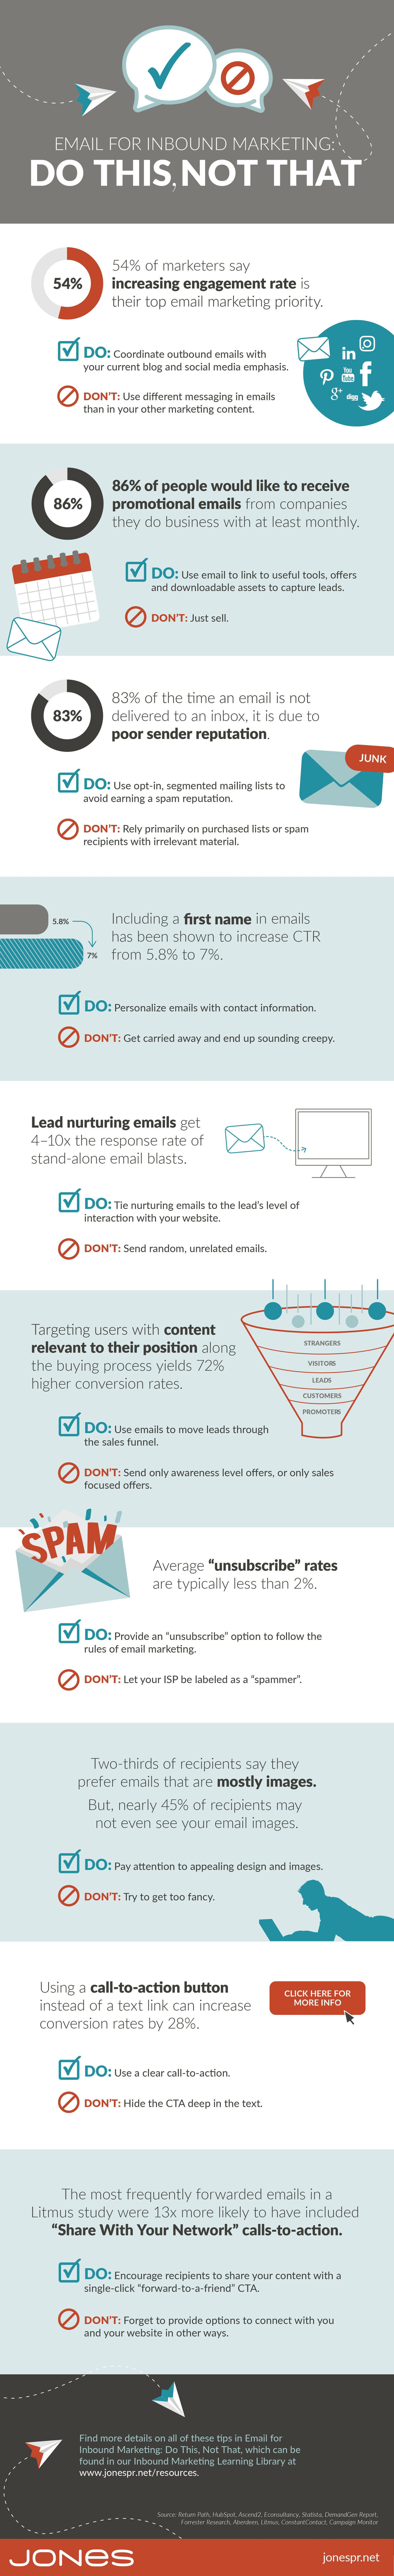 jones-infographic-email-this-not-that-01